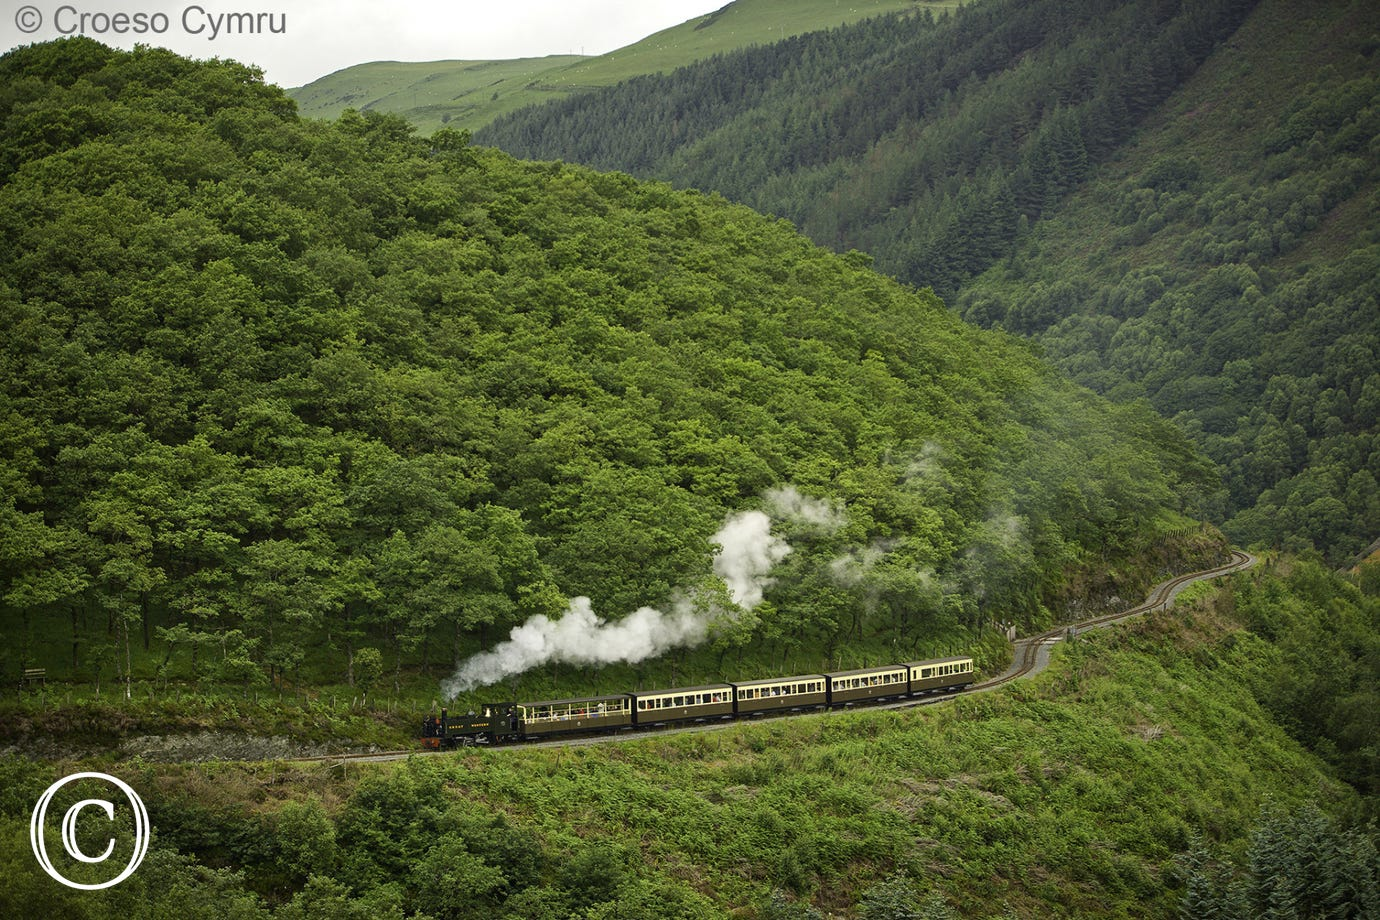 Catch the steam train from Aberystwyth to Devils Bridge